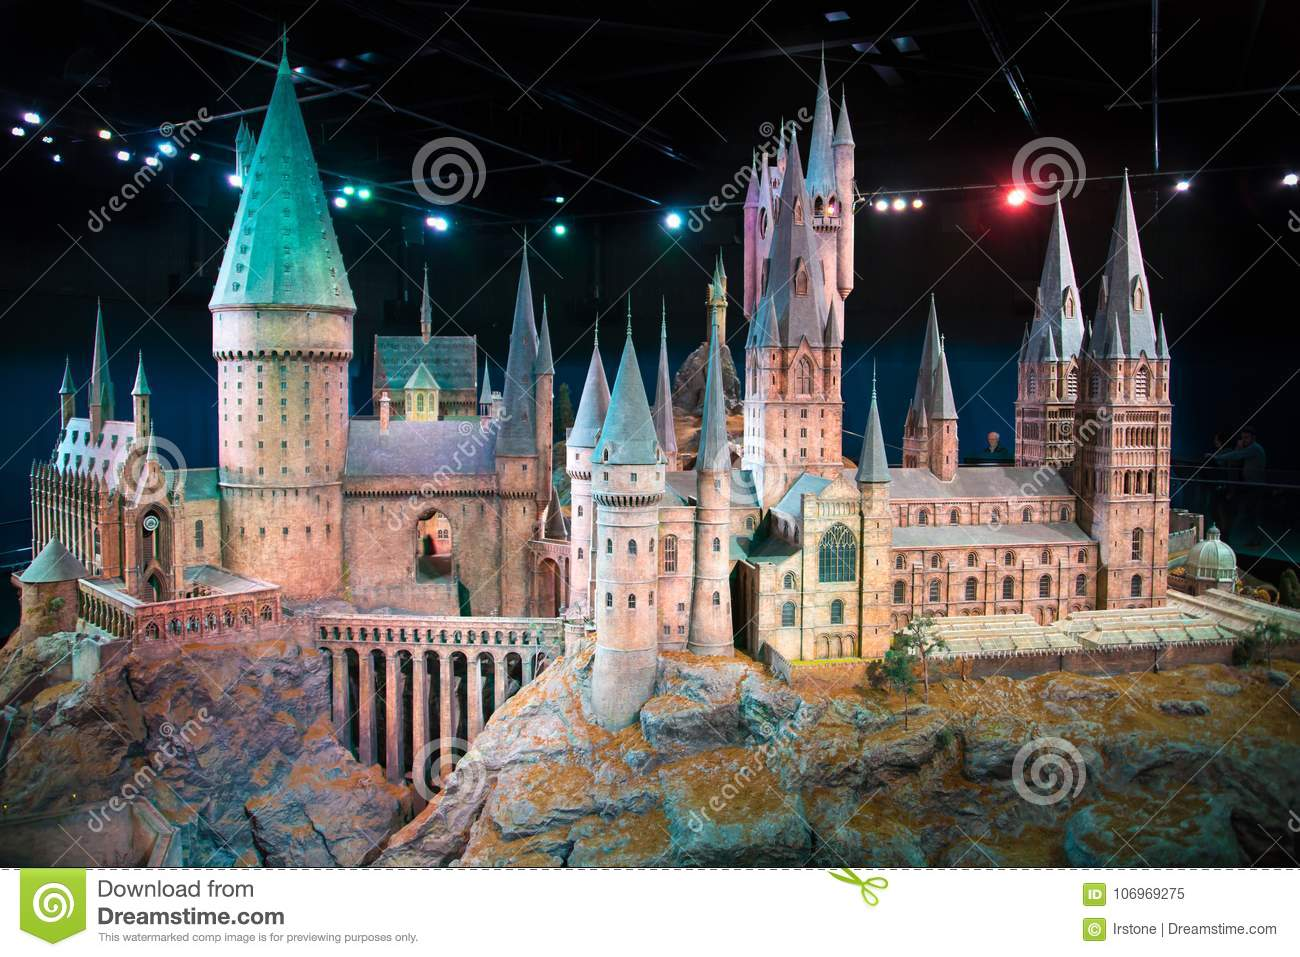 London Uk Hogwarts School Of Witchcraft And Wizardry Model